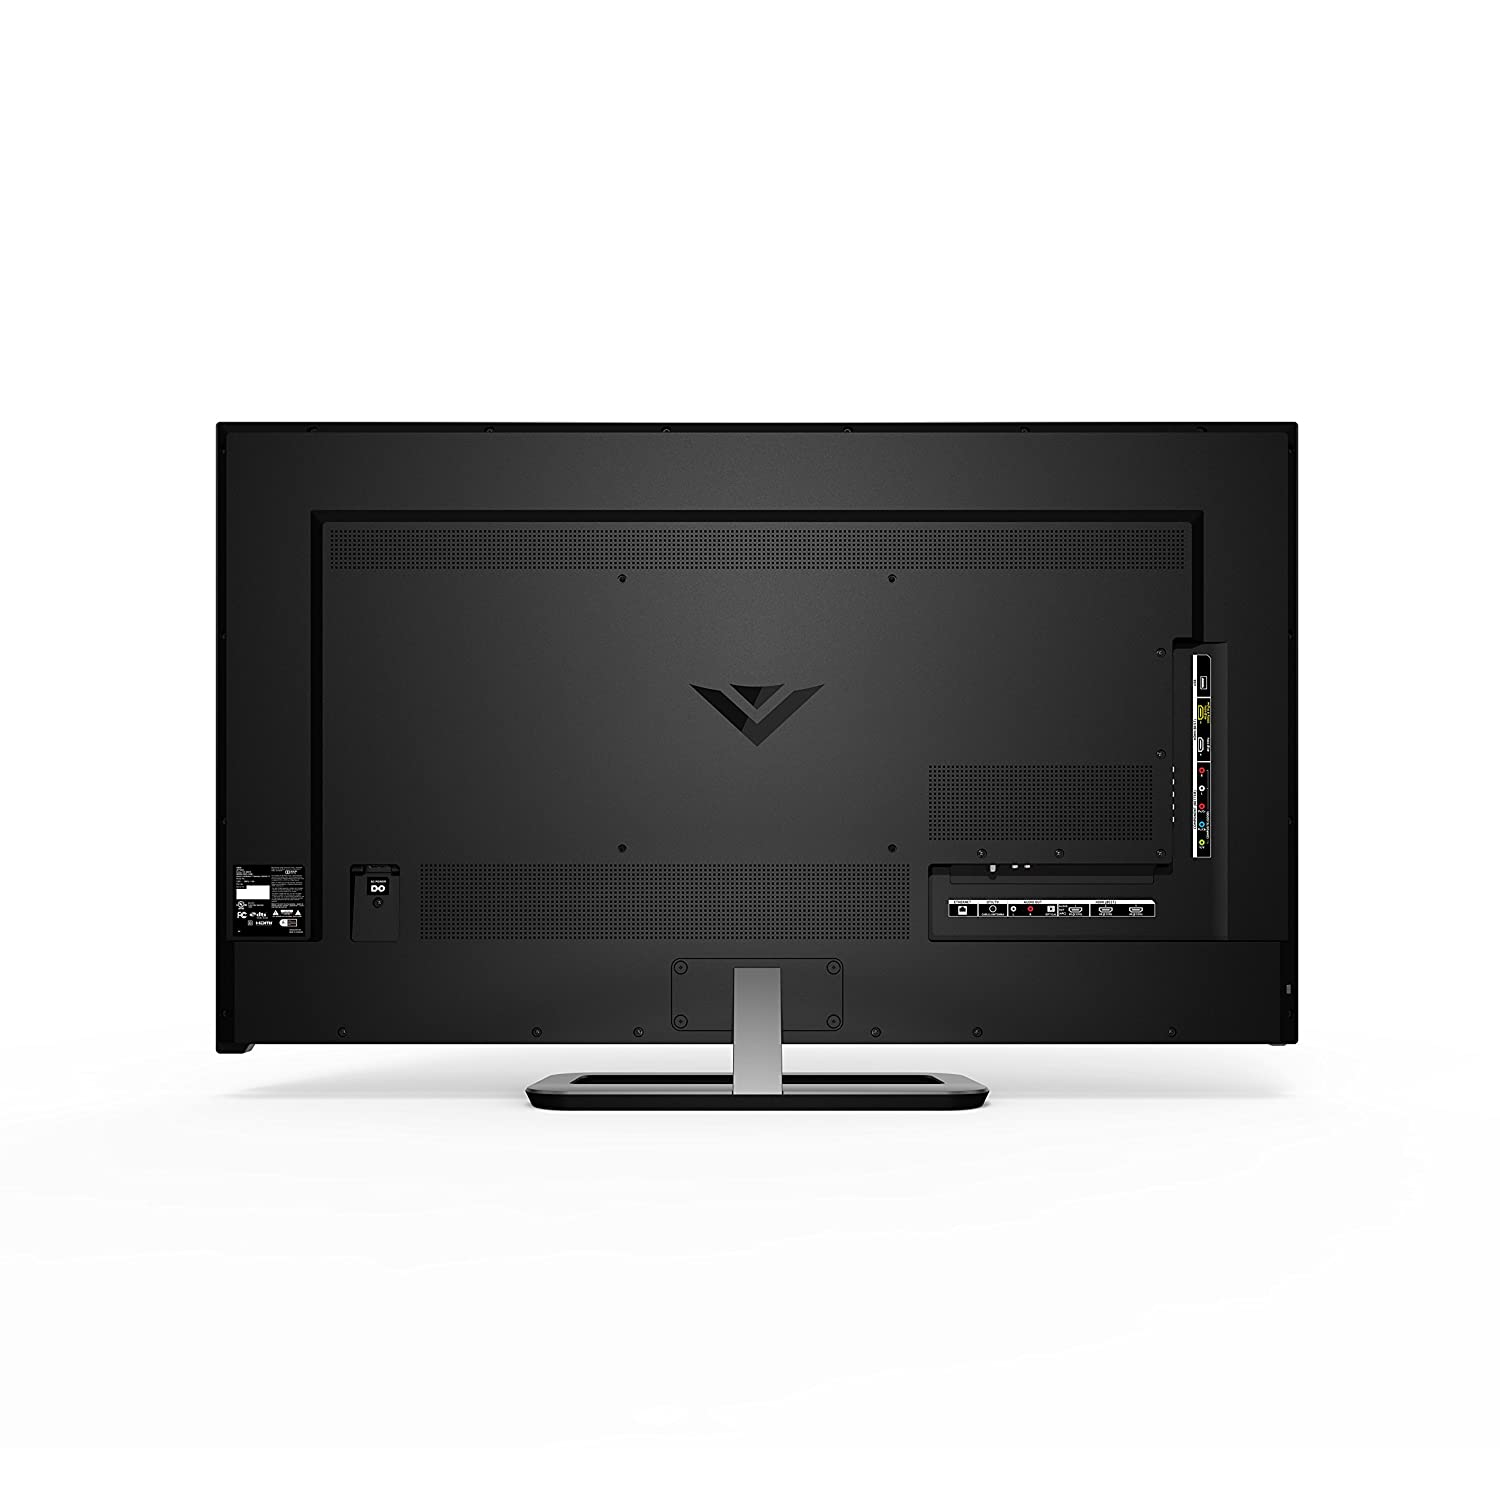 811xXIbS2mL._SL1500_ amazon com vizio p502ui b1 50 inch 4k ultra hd smart led hdtv vizio tv wiring diagram at bayanpartner.co